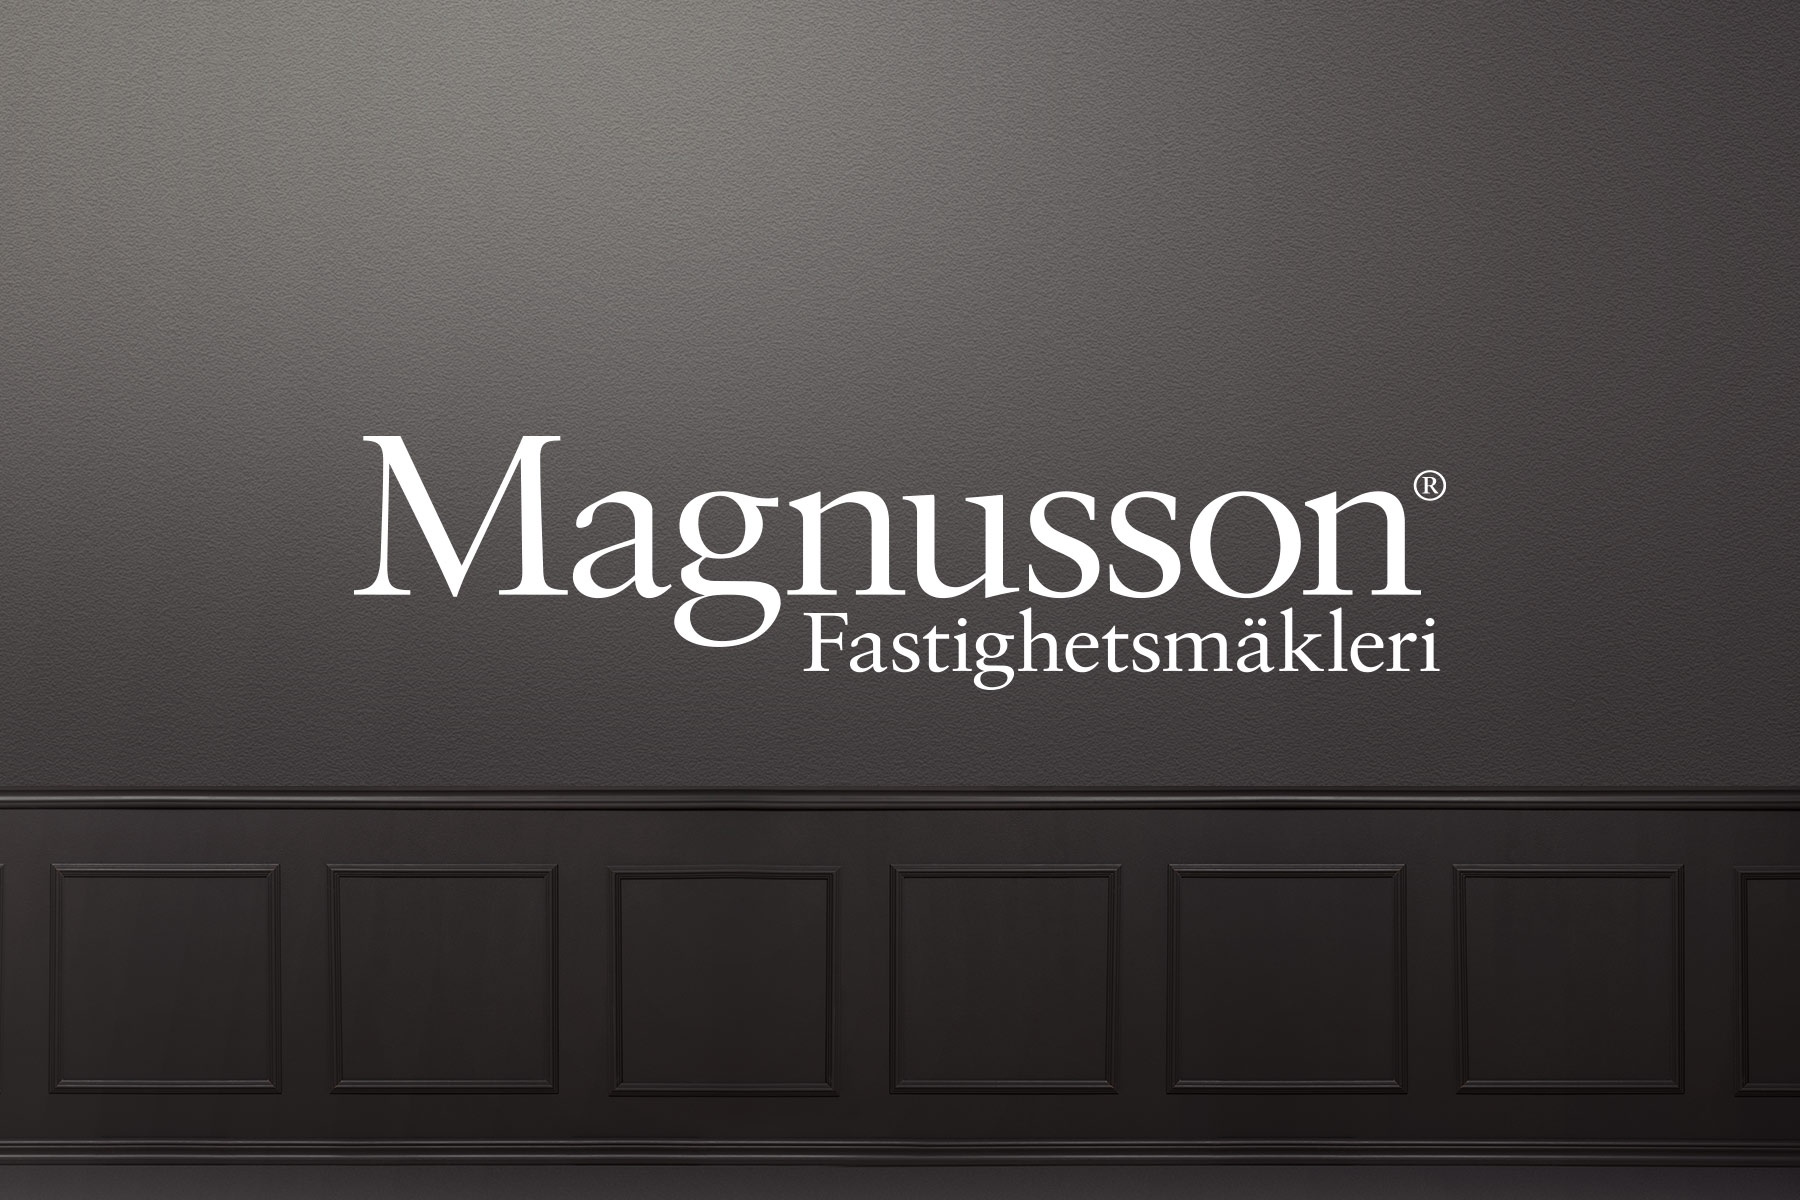 Magnusson_Case_02